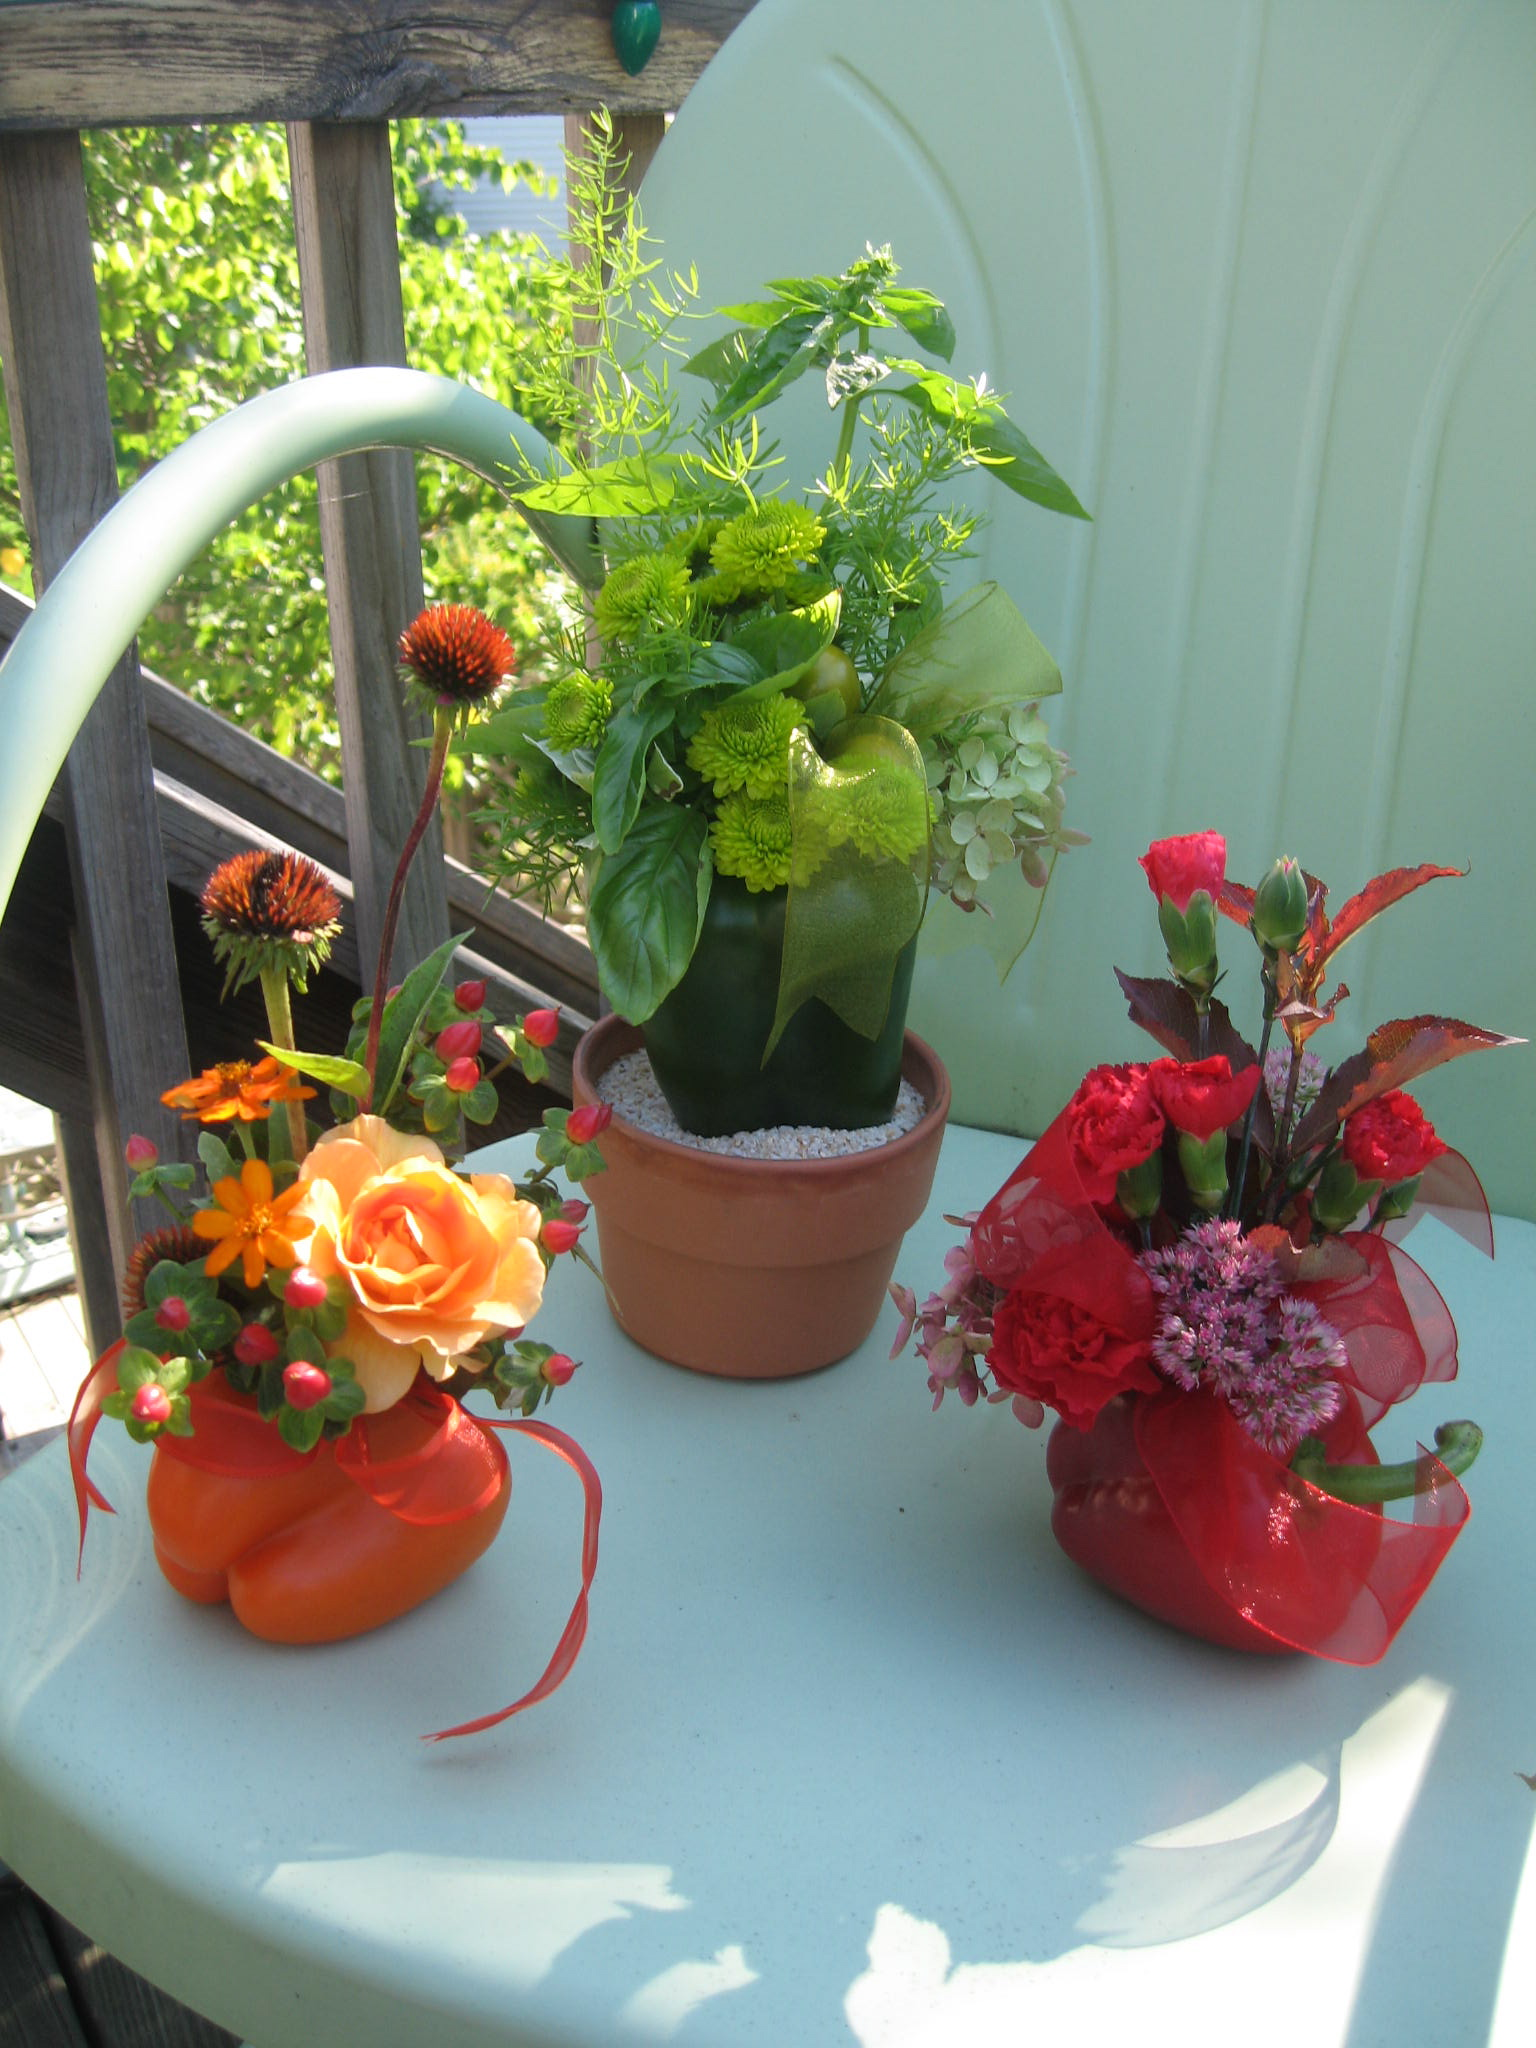 Arrange flowers into a fresh pepper for perfectly organic centerpiece!